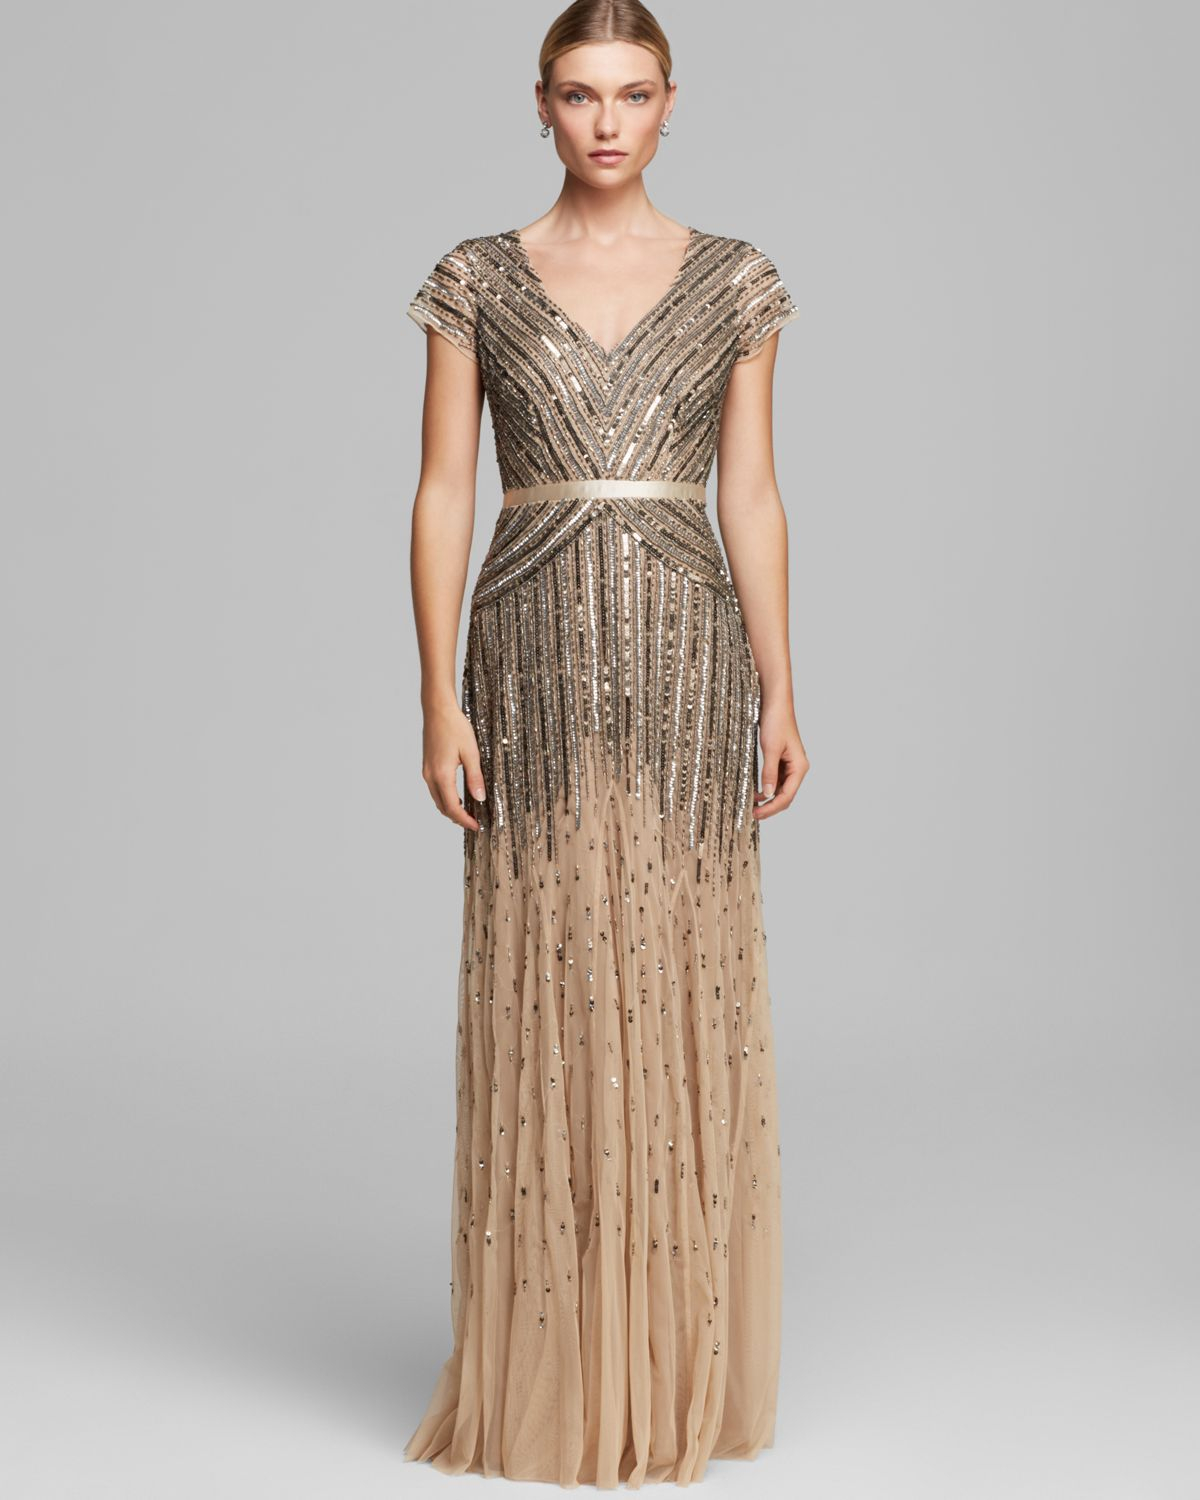 Adrianna Papell | Beaded V-Neck Gown | Dresses, Gowns, Fashion